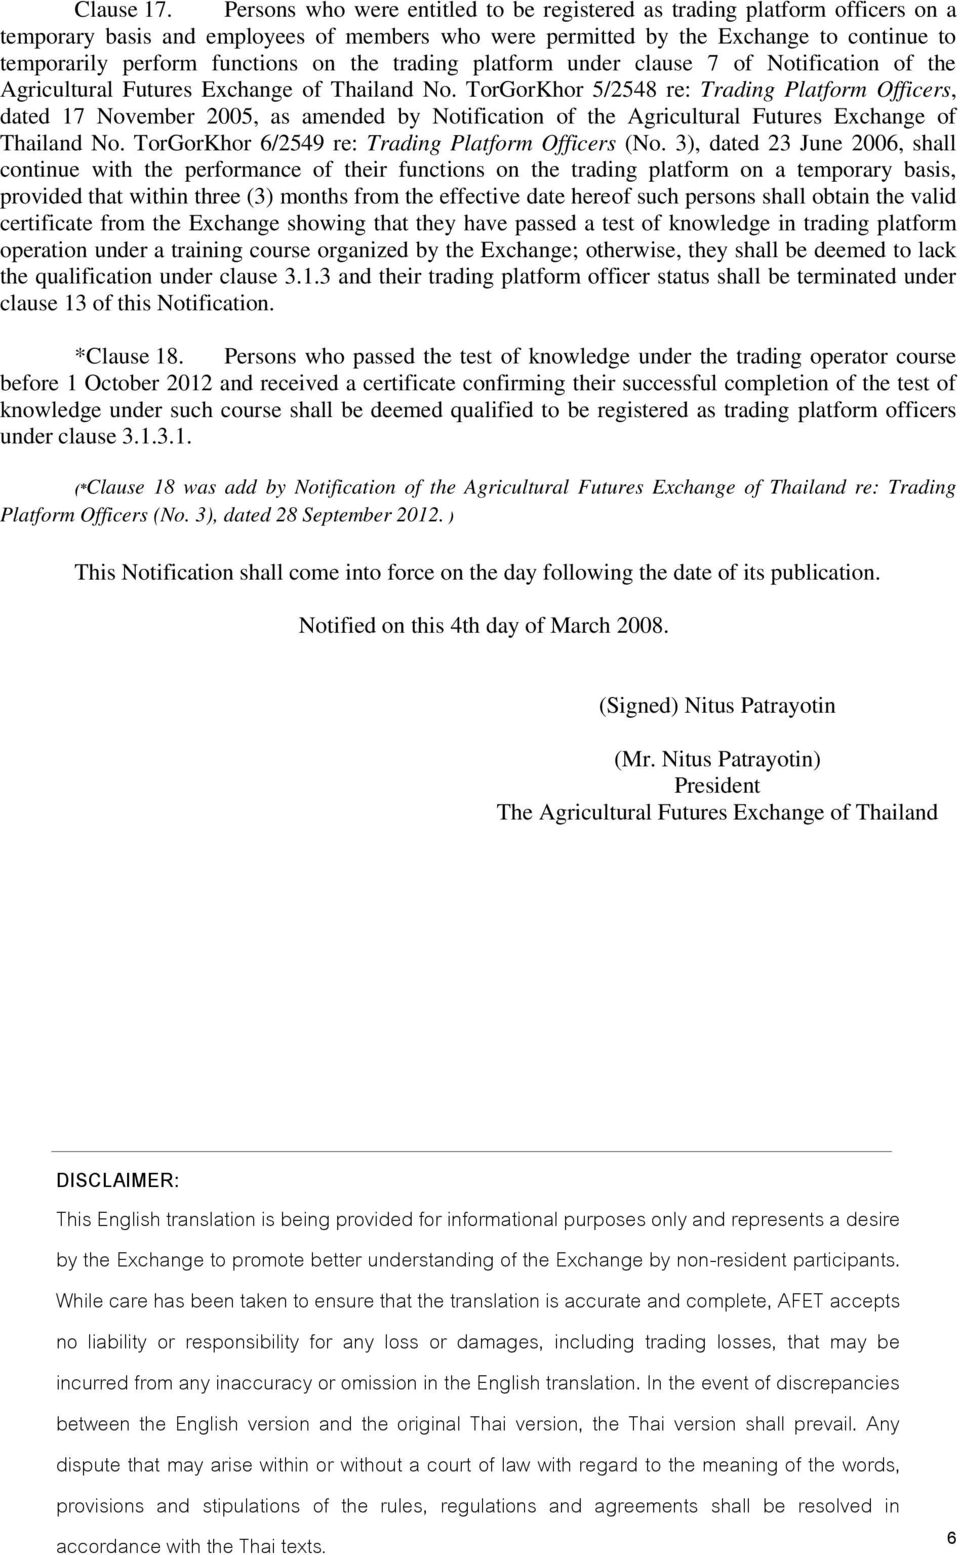 on the trading platform under clause 7 of Notification of the Agricultural Futures Exchange of Thailand No.